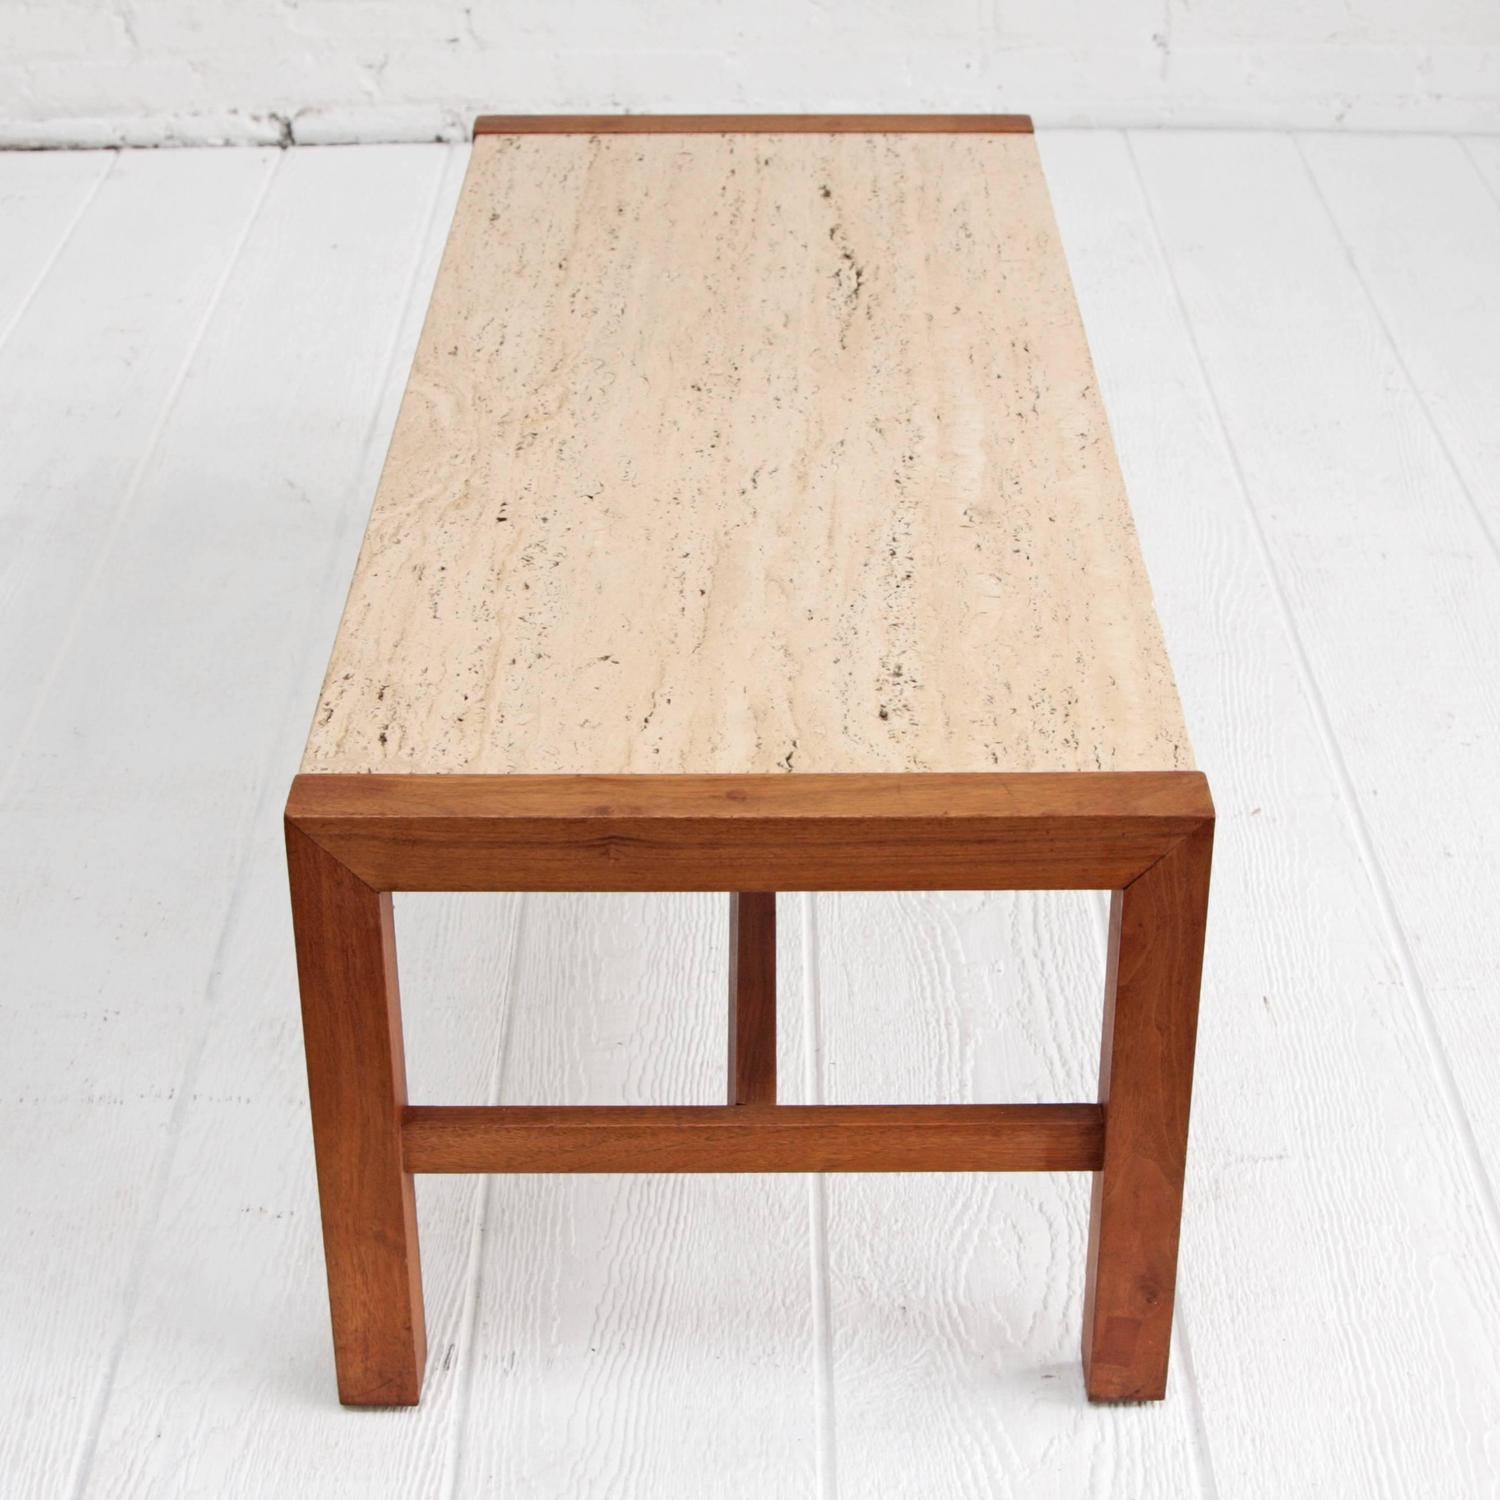 Solid Travertine Coffee Table: Travertine And Walnut Midcentury Coffee Table At 1stdibs